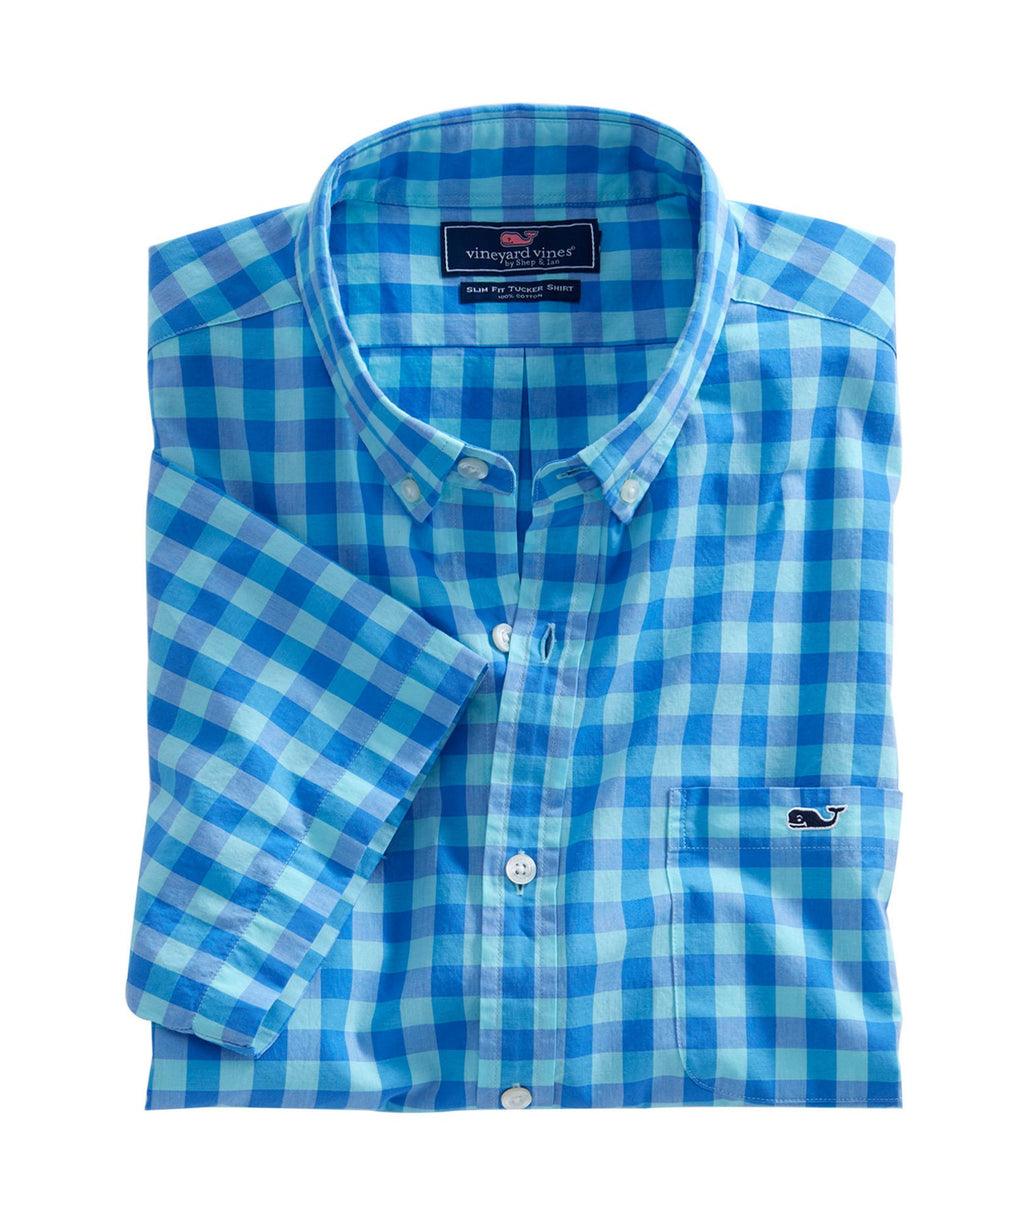 Short-Sleeve Slim Fit Tucker Shirt - Fort George Check